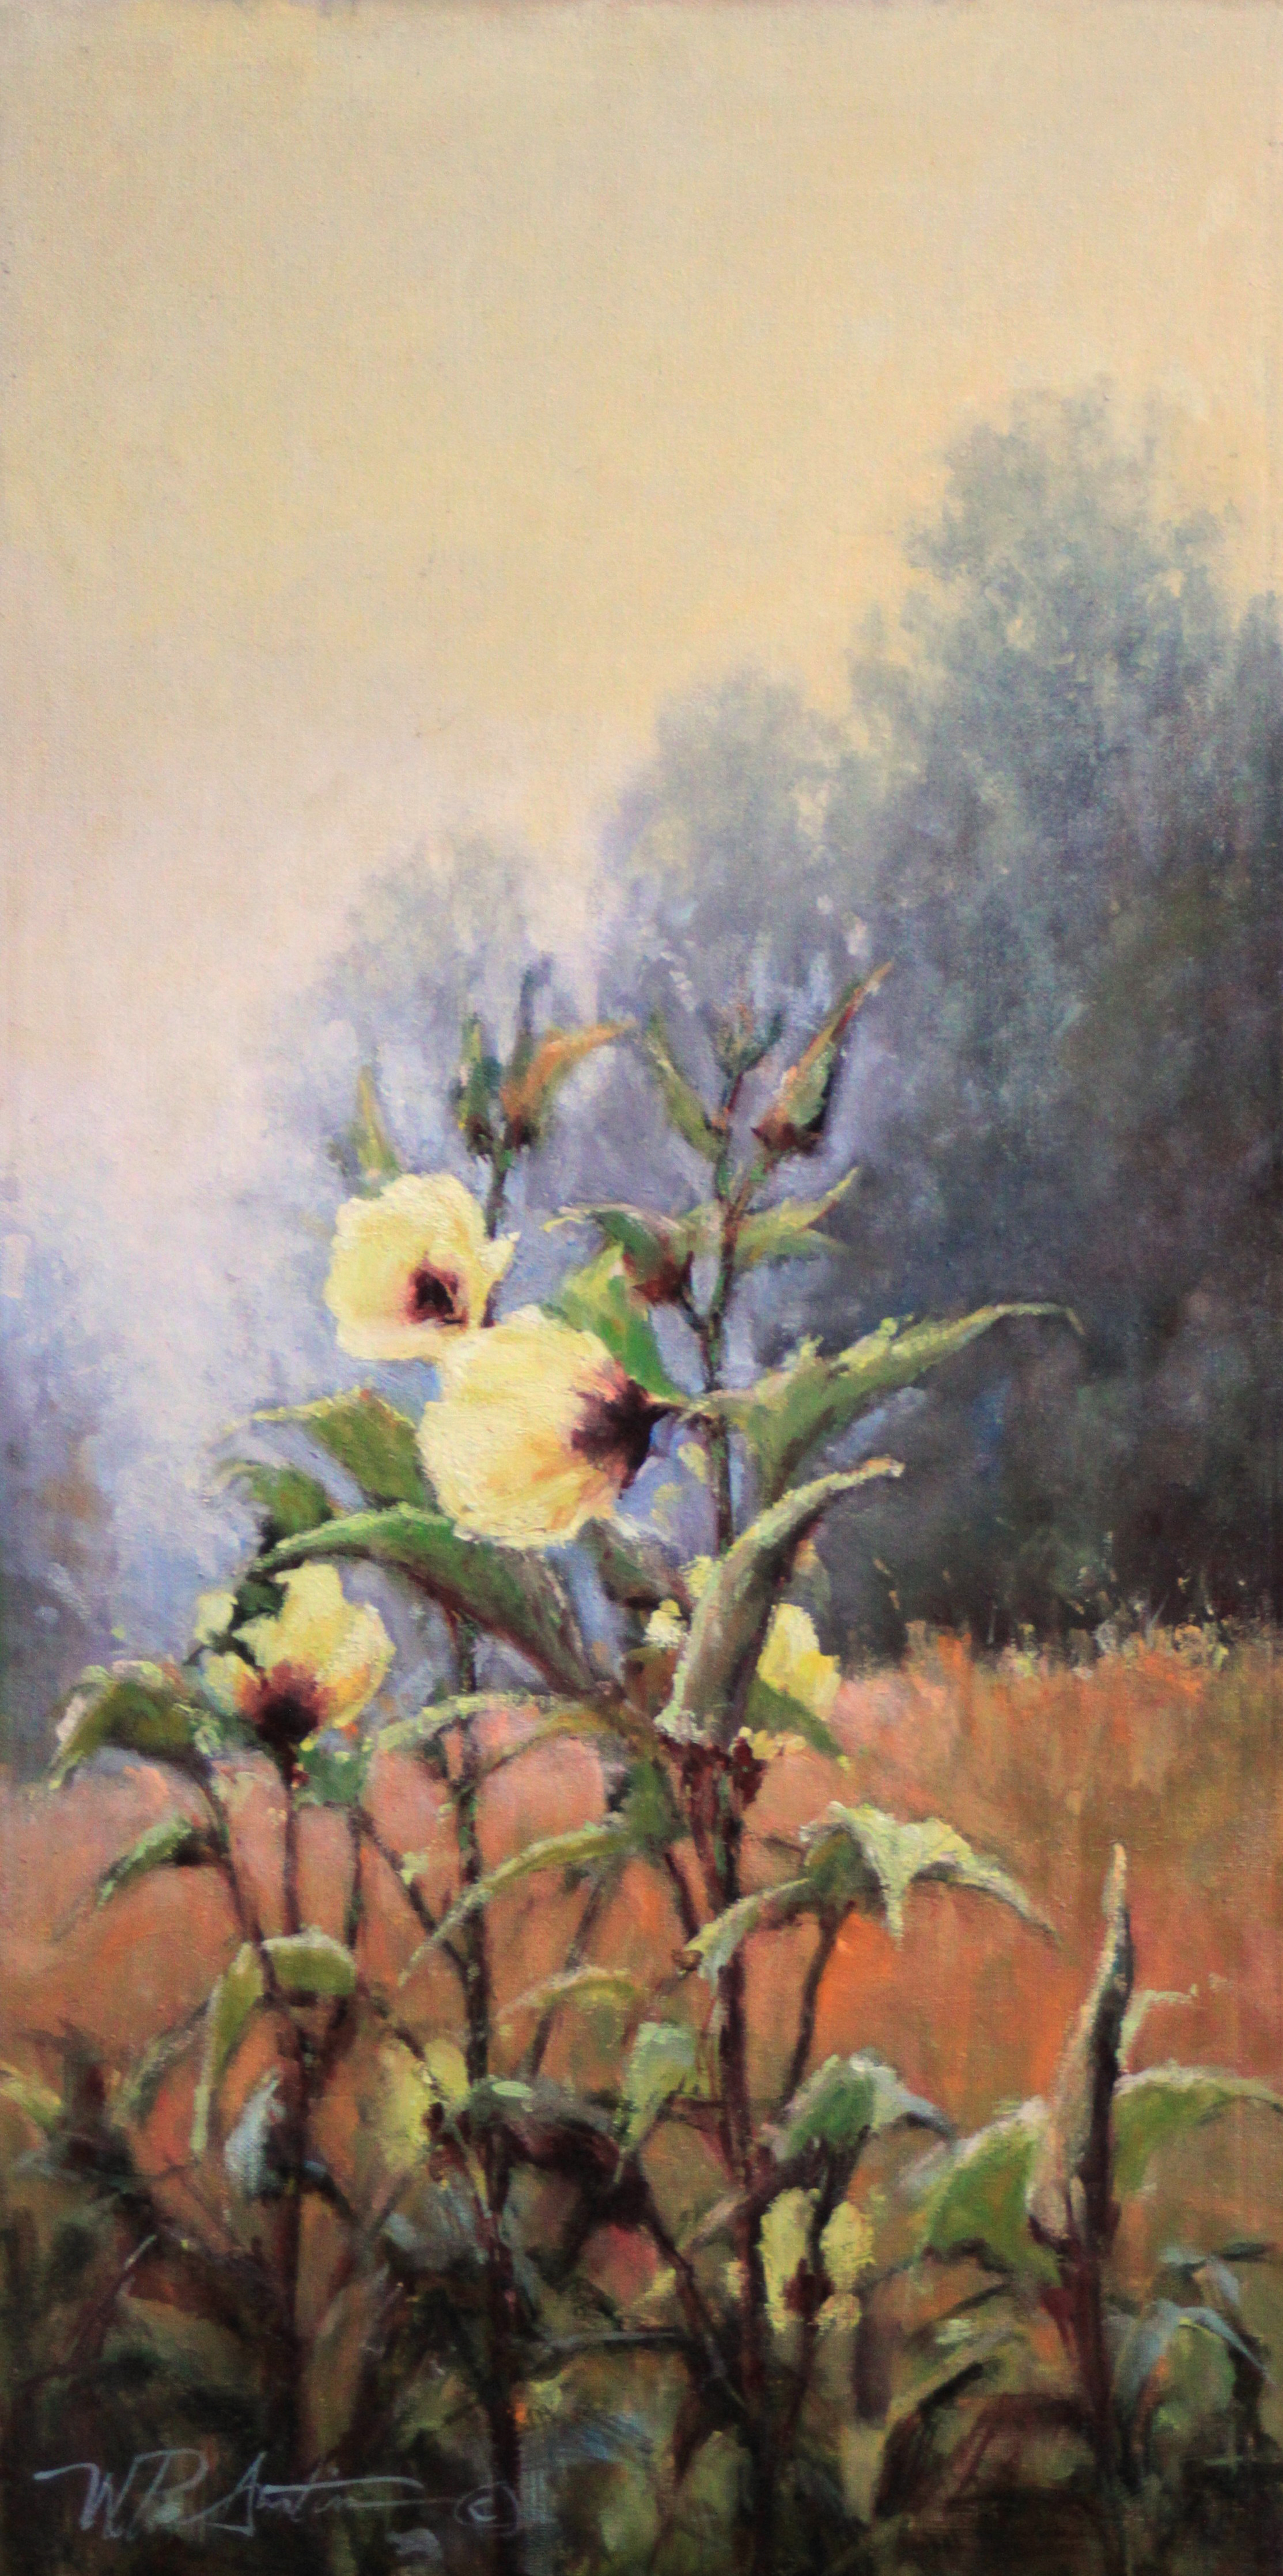 Okra Blossoms by Perry Austin